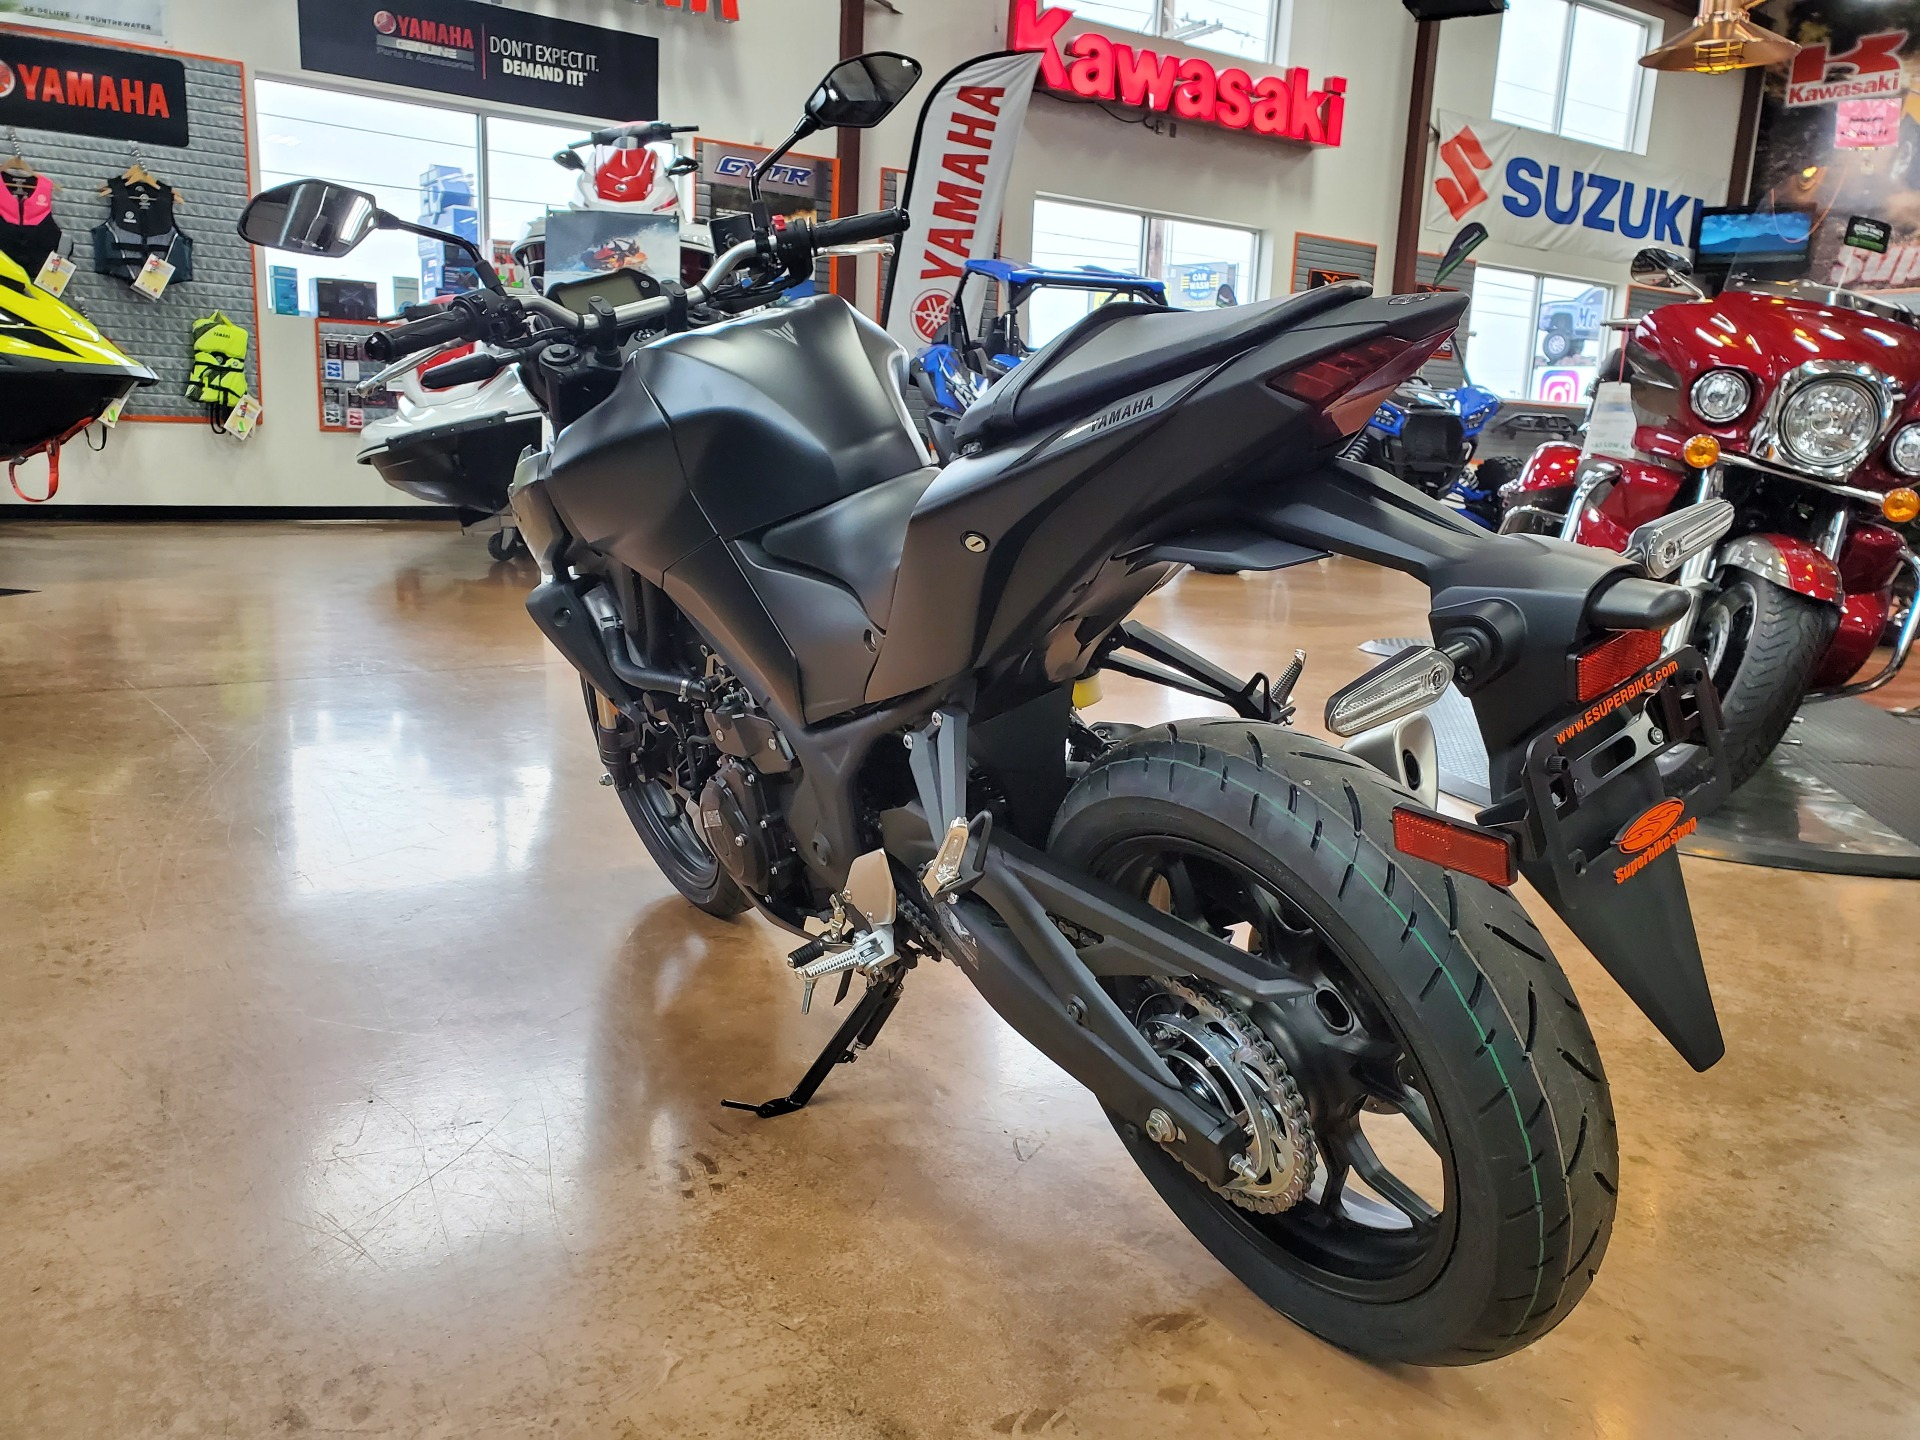 2021 Yamaha MT-03 in Evansville, Indiana - Photo 5